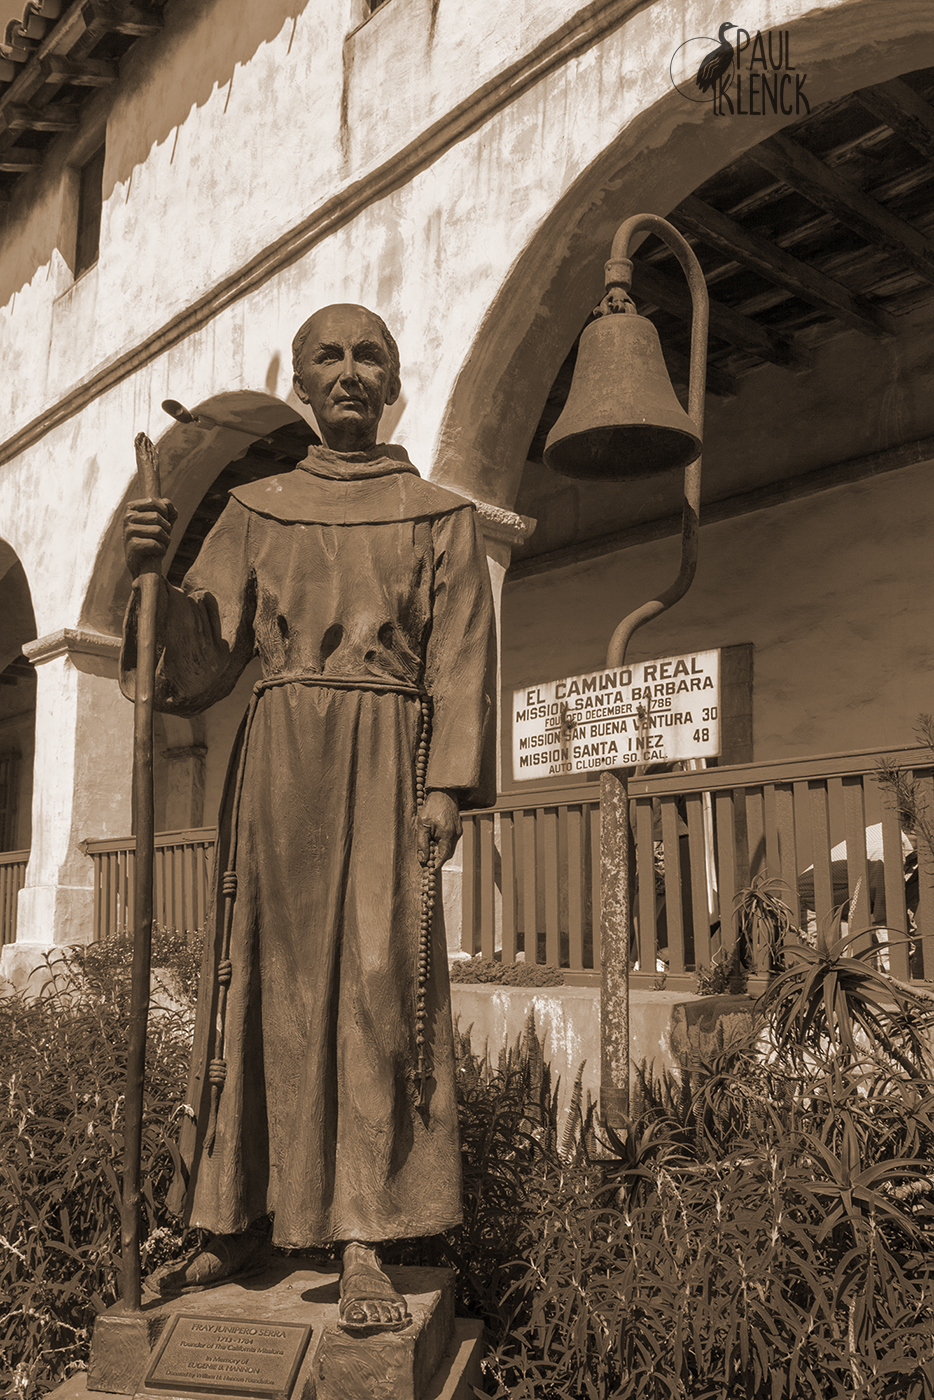 Saint Junipero Serra, Mission Santa Barbara, California